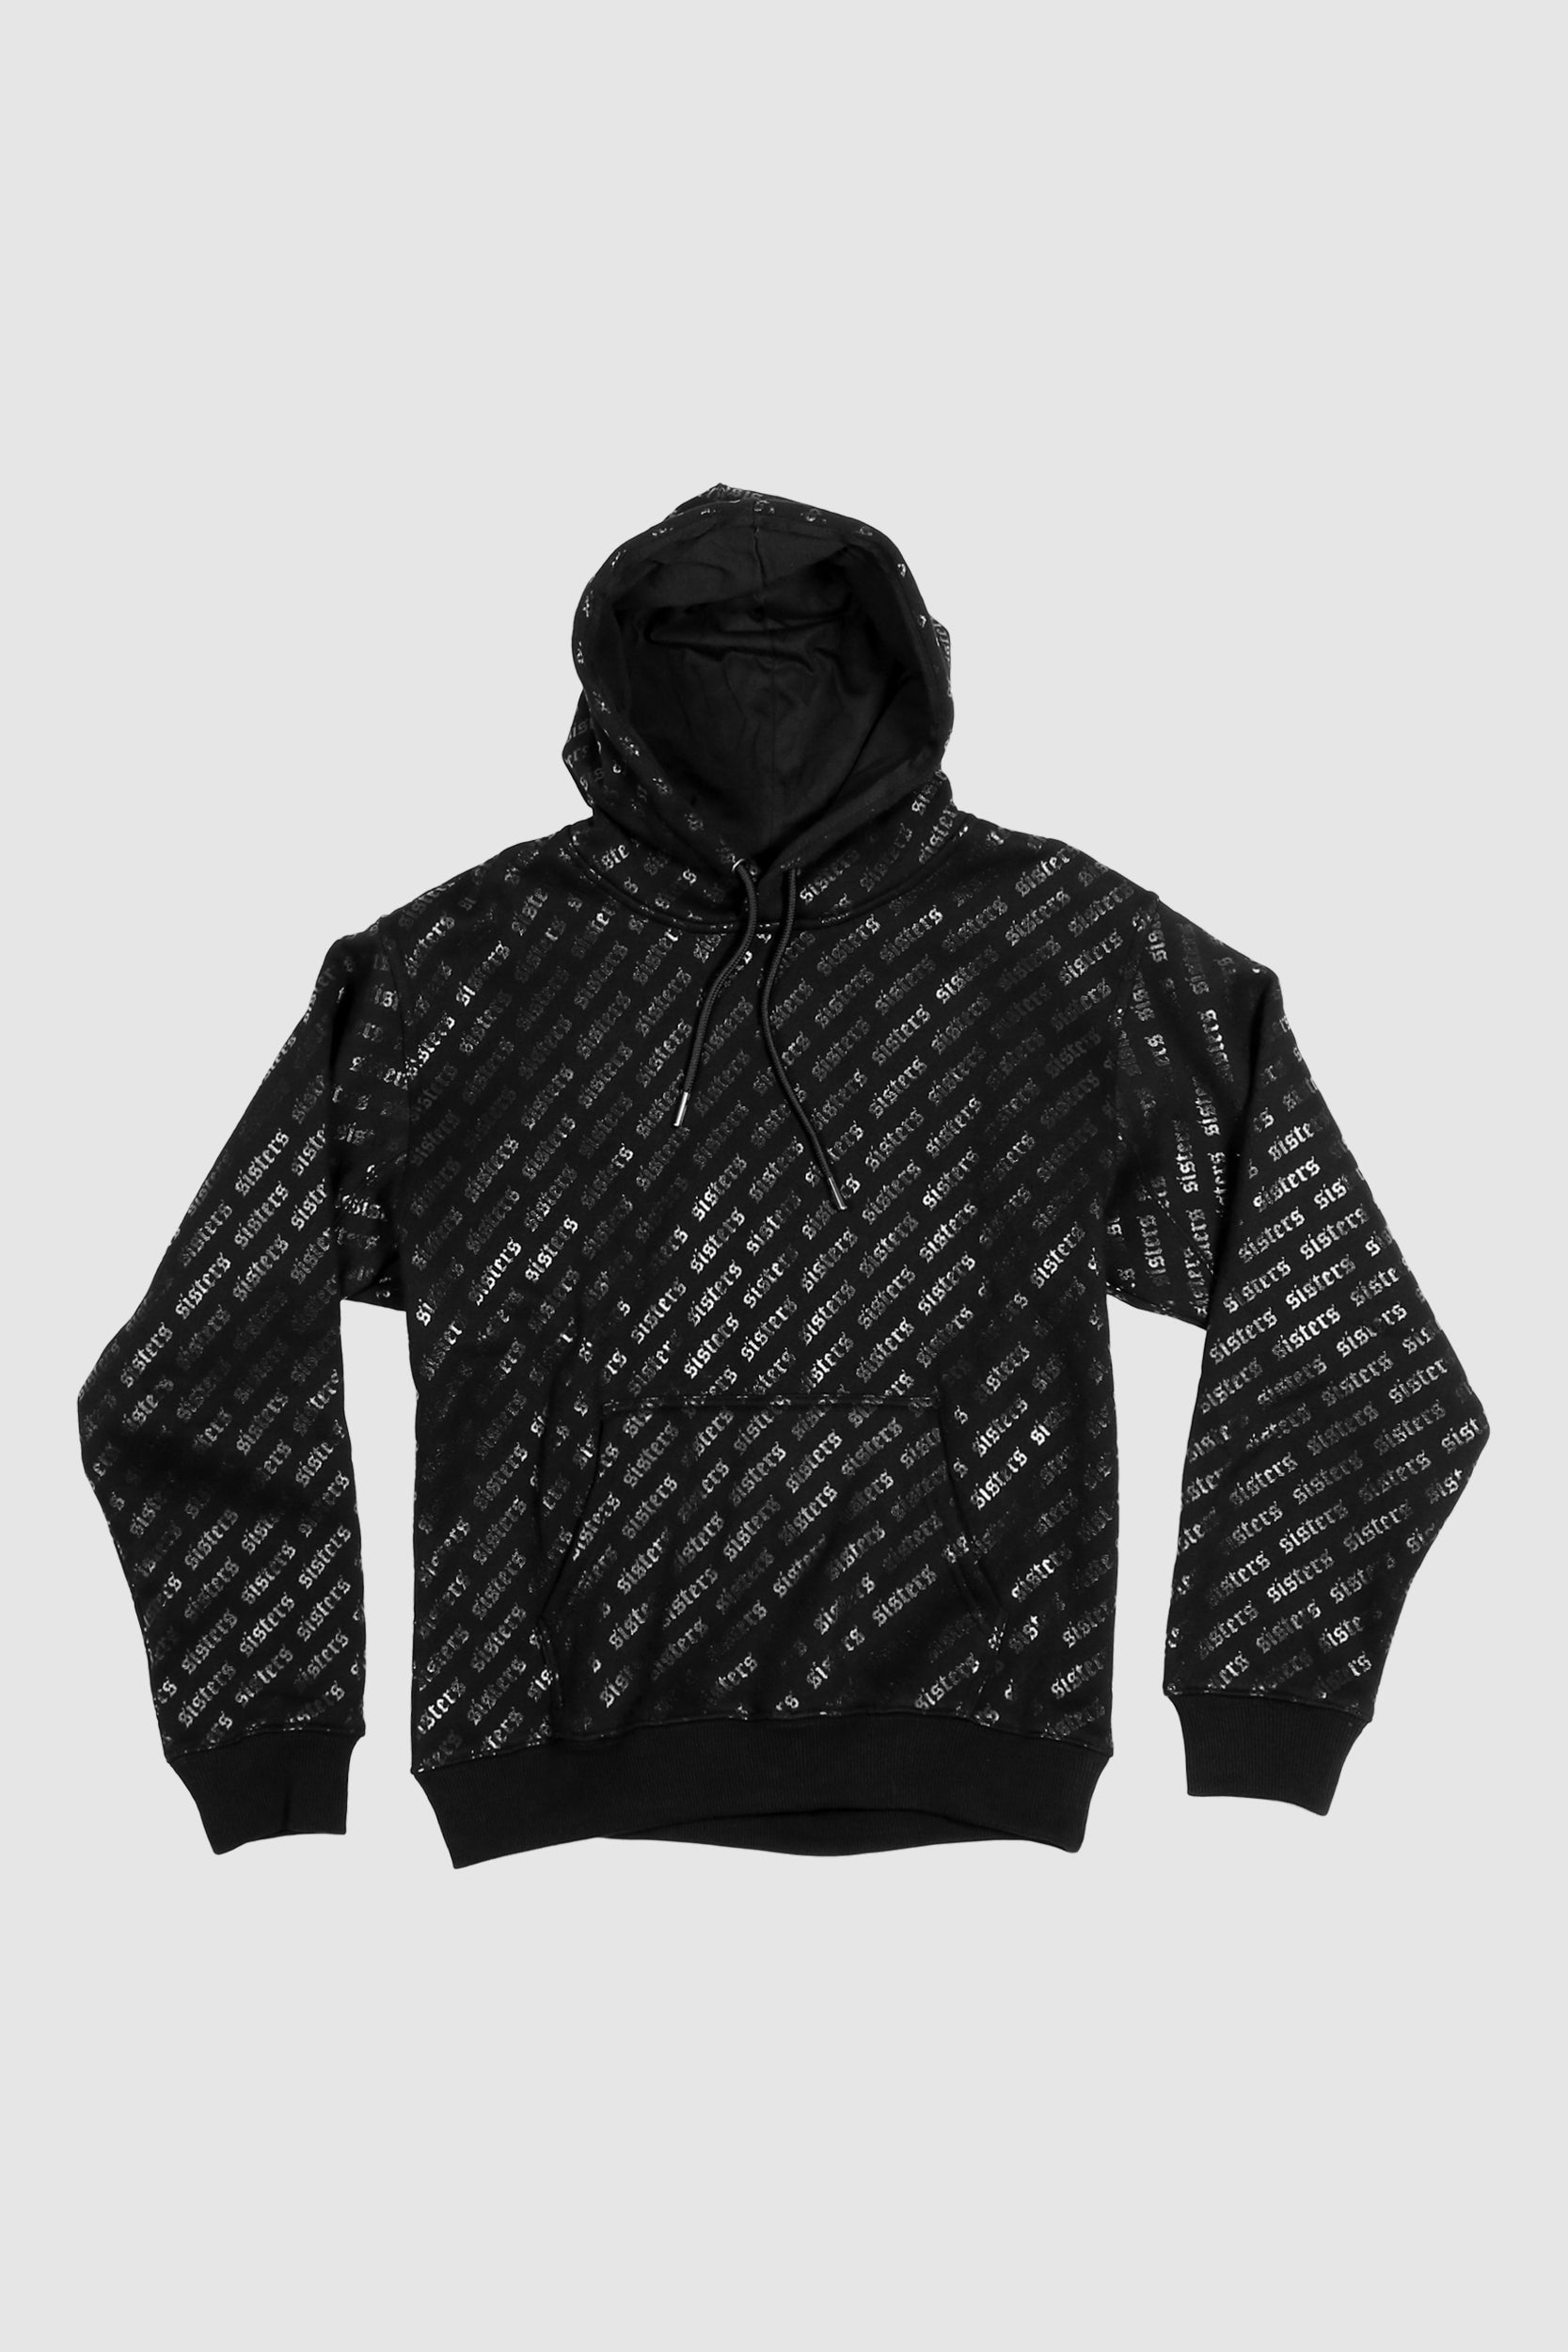 Singles All Over Print Hoodie